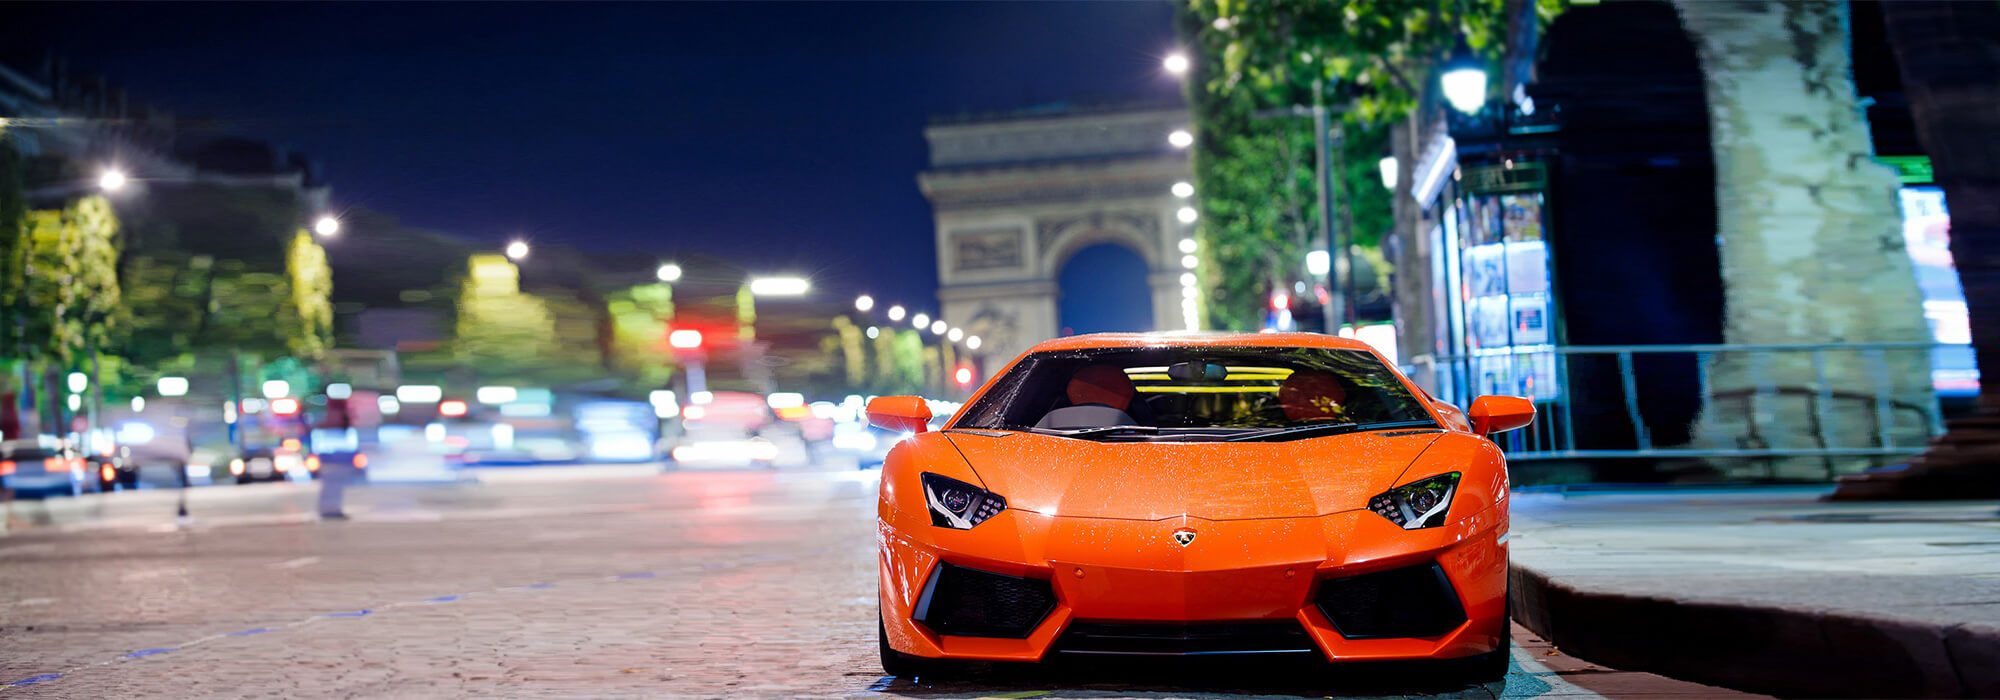 Sports Car Rental In Dubai Sports Car For Rent In Dubai